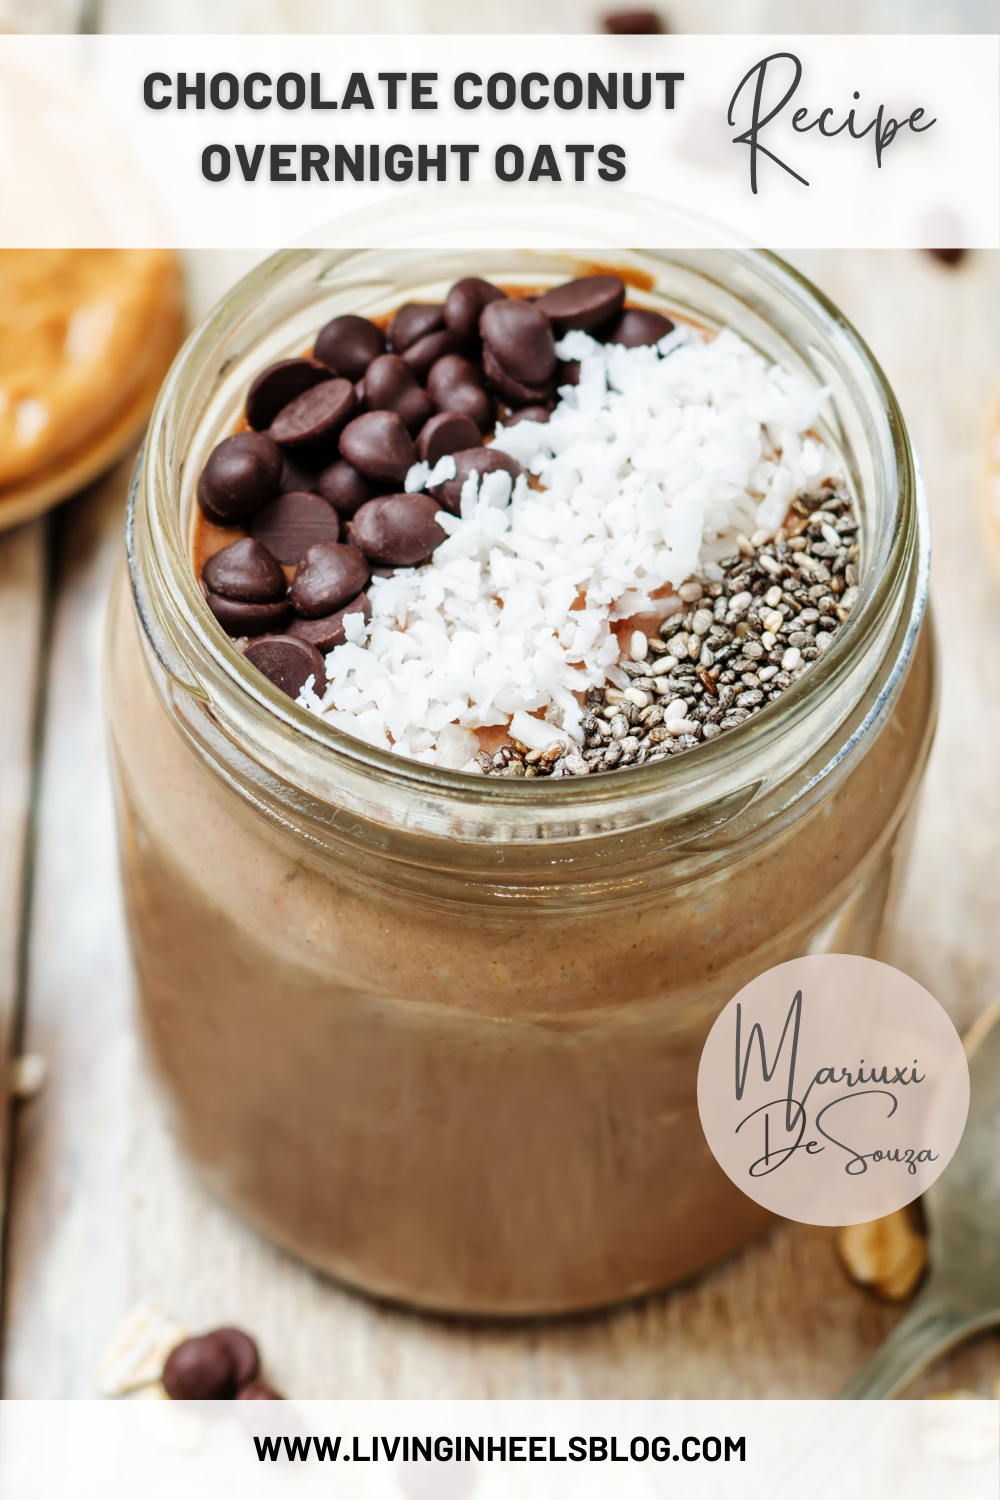 chocolate overnight oats, overnight oats, how to make overnight oats, overnight oats for weight loss, overnight oats easy, easy to make overnight oats, healthy breakfast recipes with oats